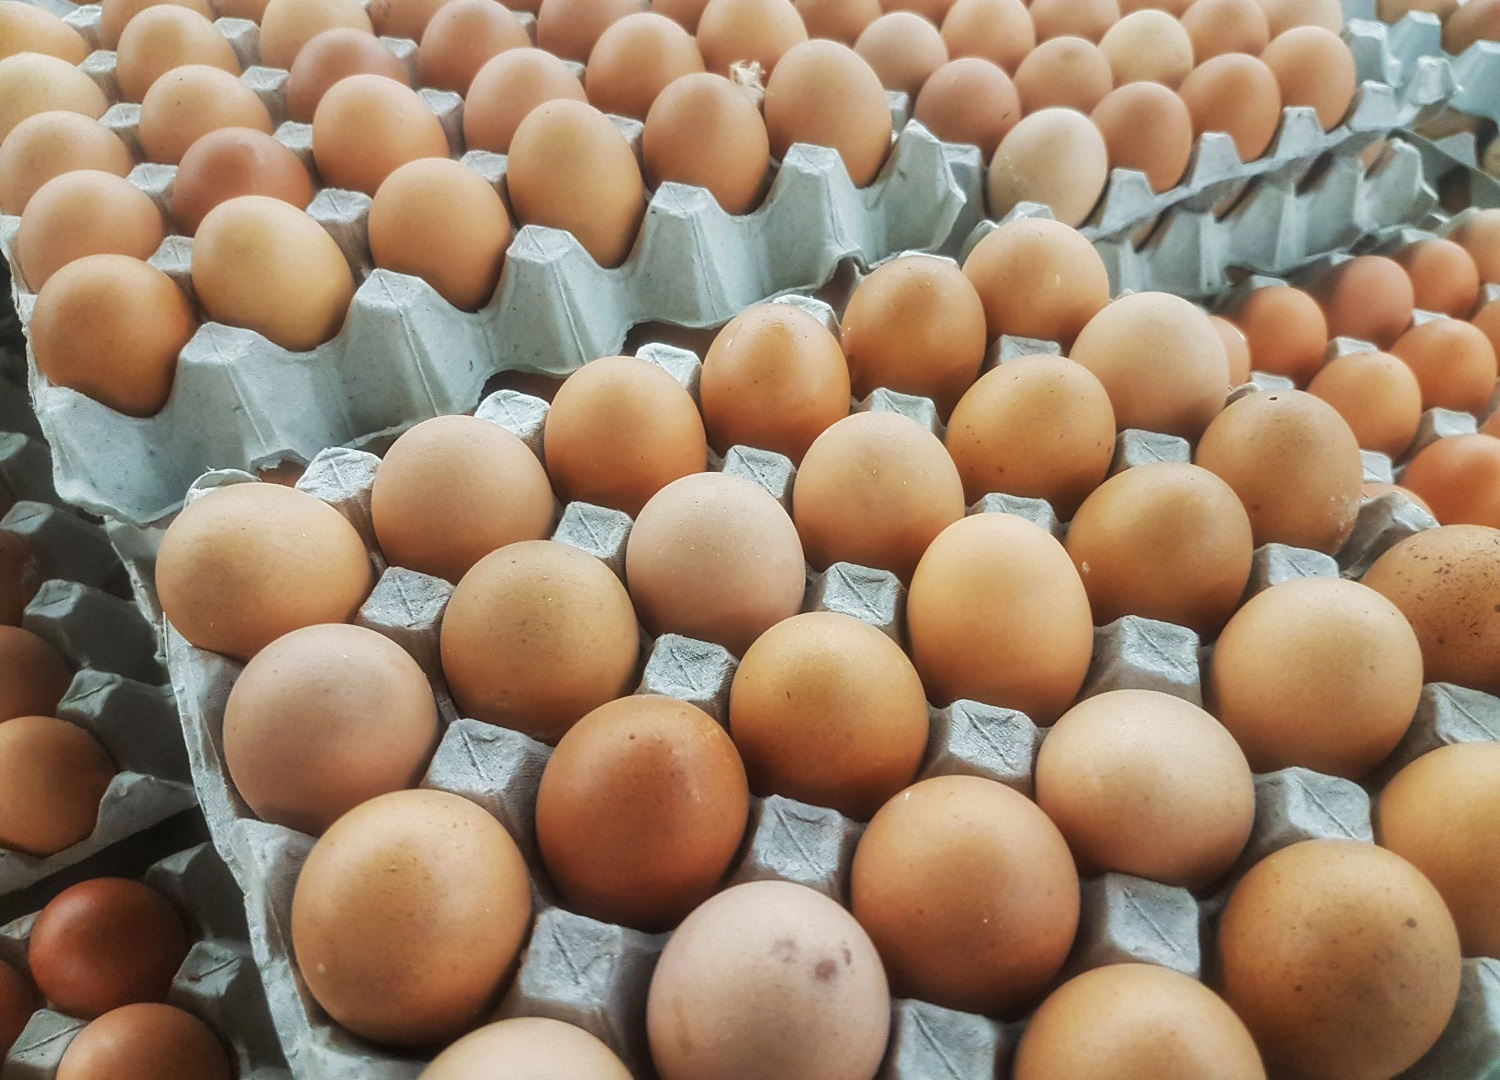 Egg supplier fined £60,000 after forklift crushes operator